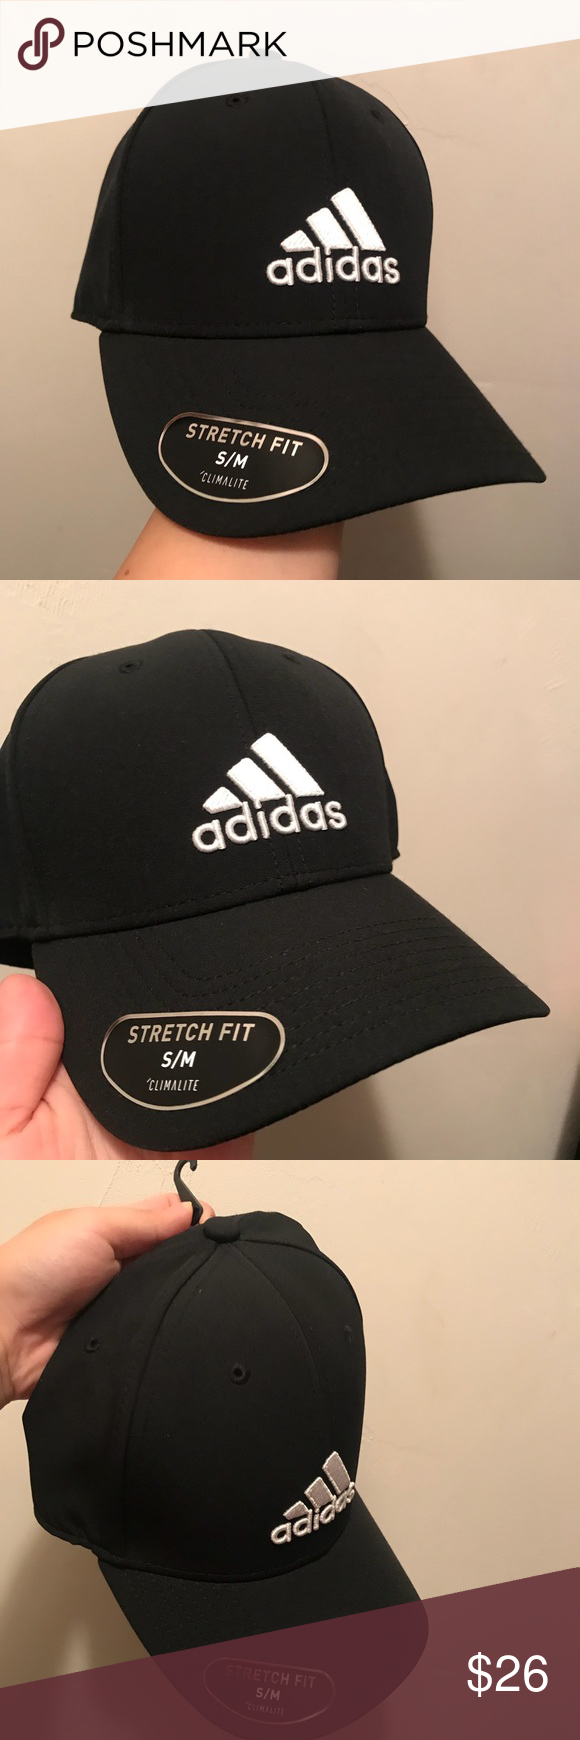 7d76471ede6 BRAND NEW MEN S ADIDAS GAME DAY STRETCH FIT HAT • Brand new • Adidas •  Men s but works for women s too! • Black